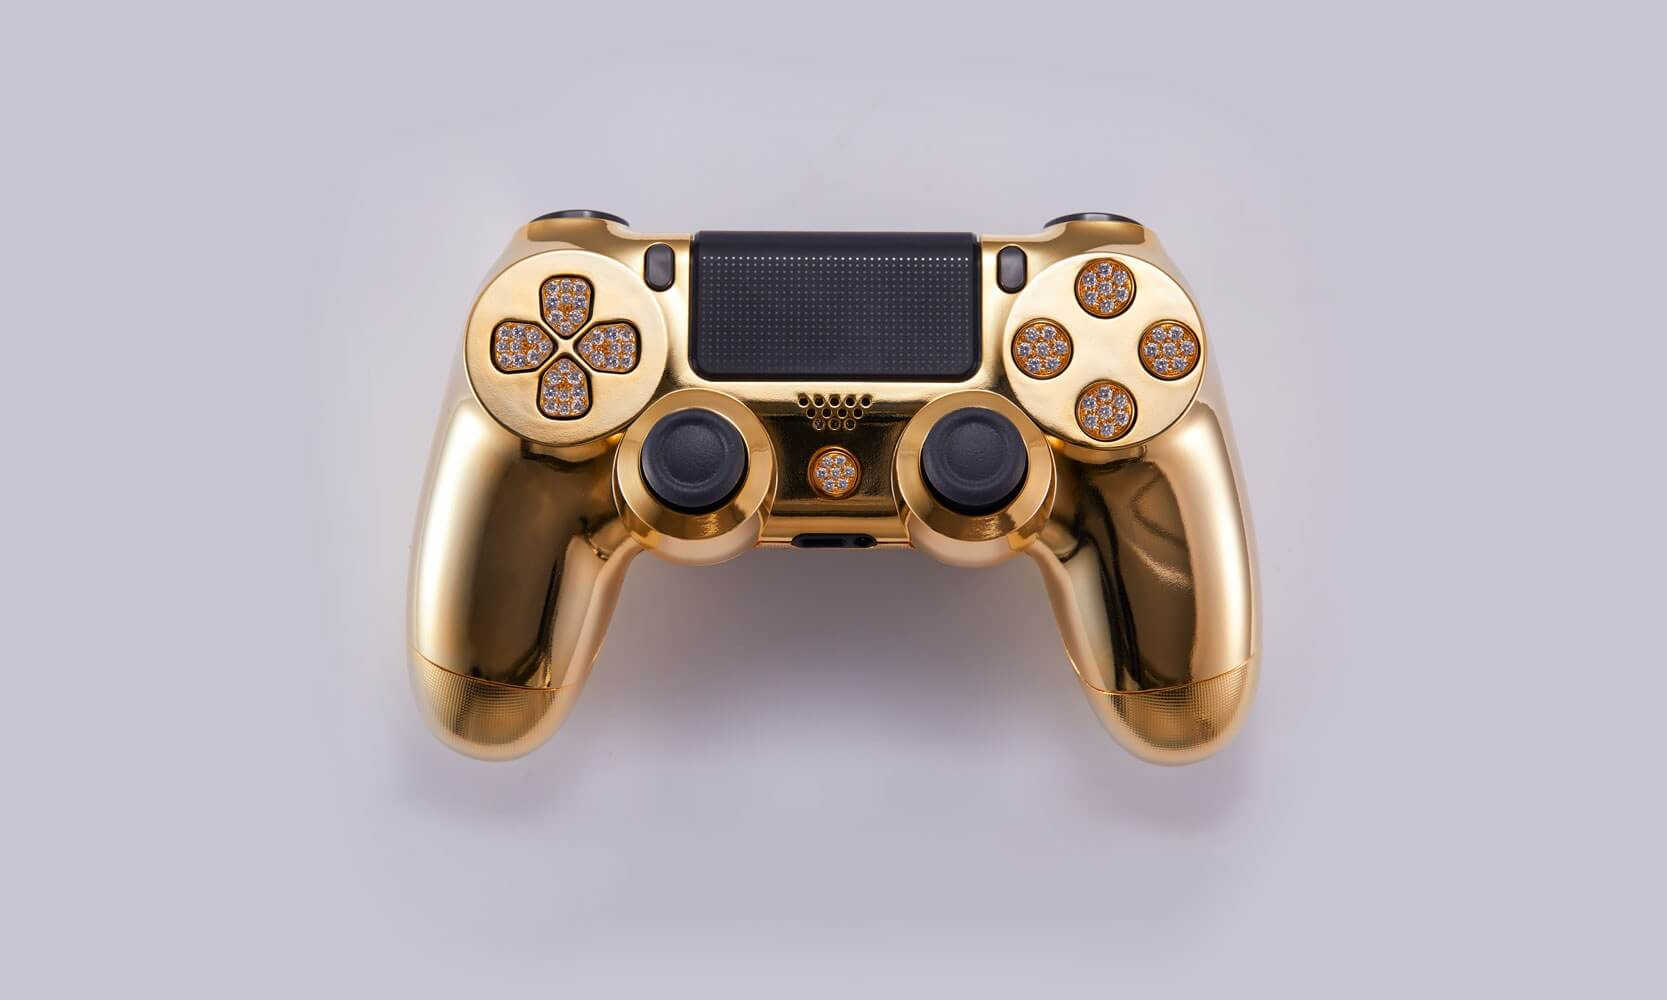 Want a more blingy PS4 controller? Check out this $14,000